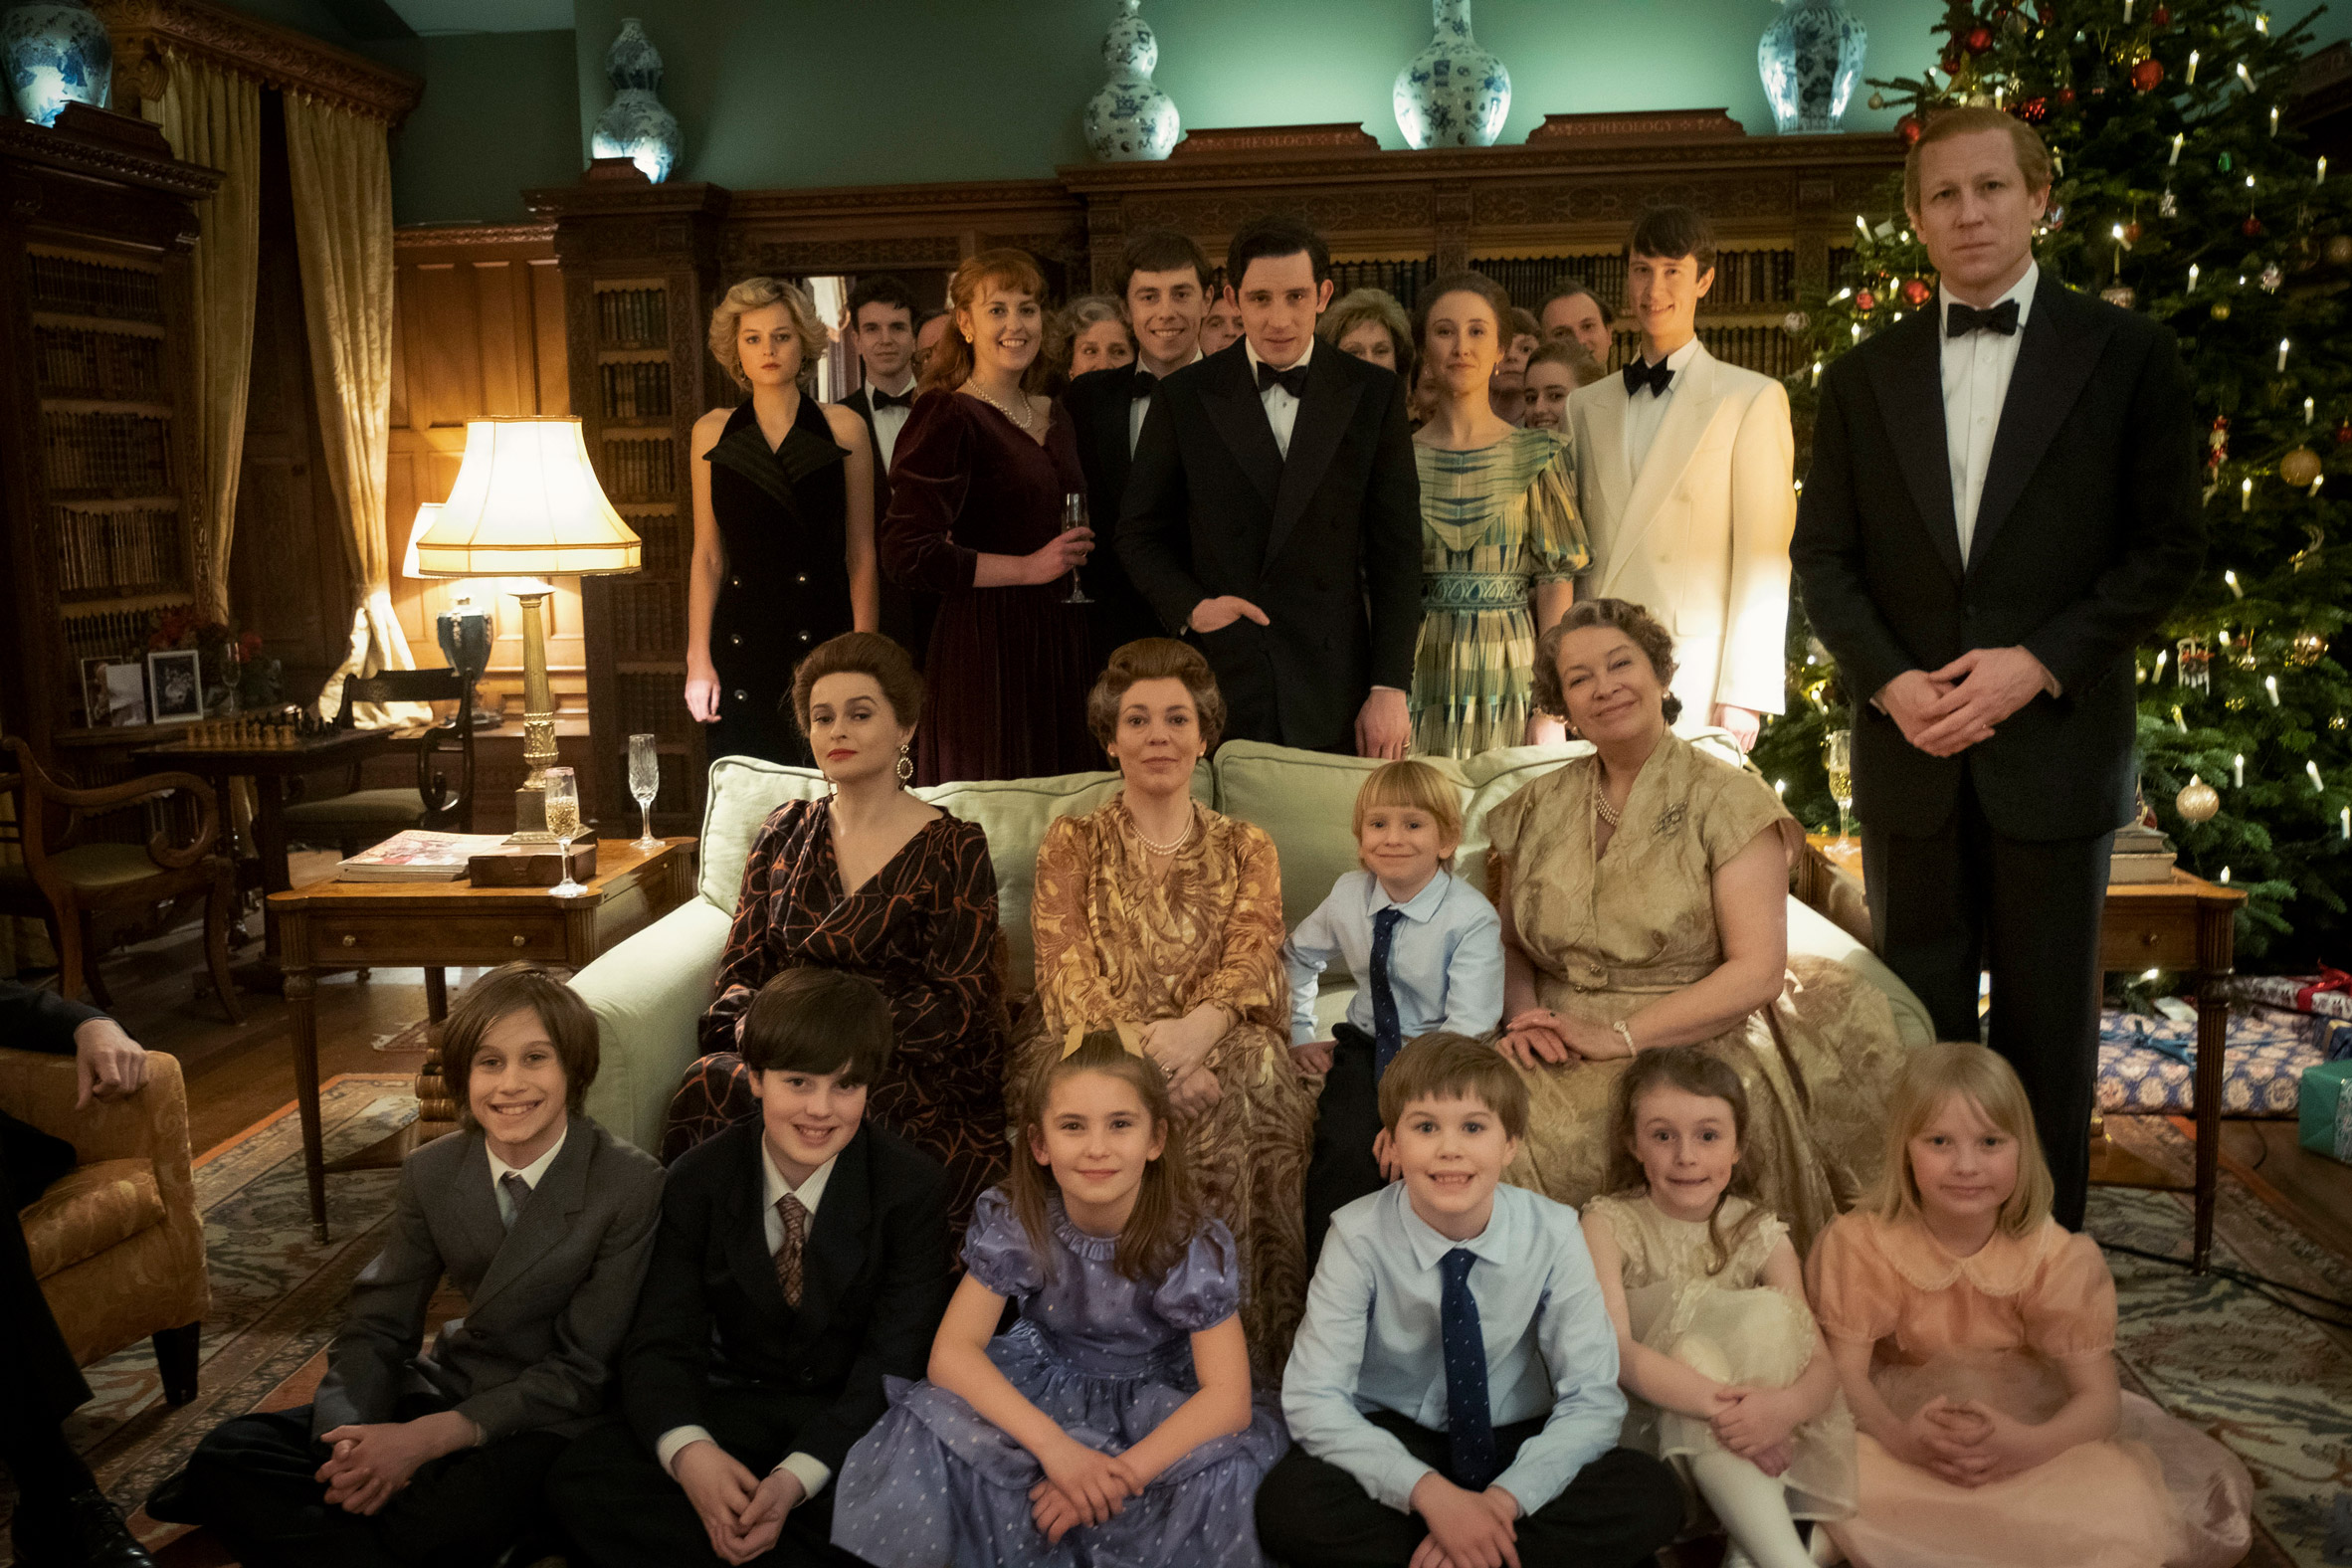 The royal family played by actors in The Crown season 4